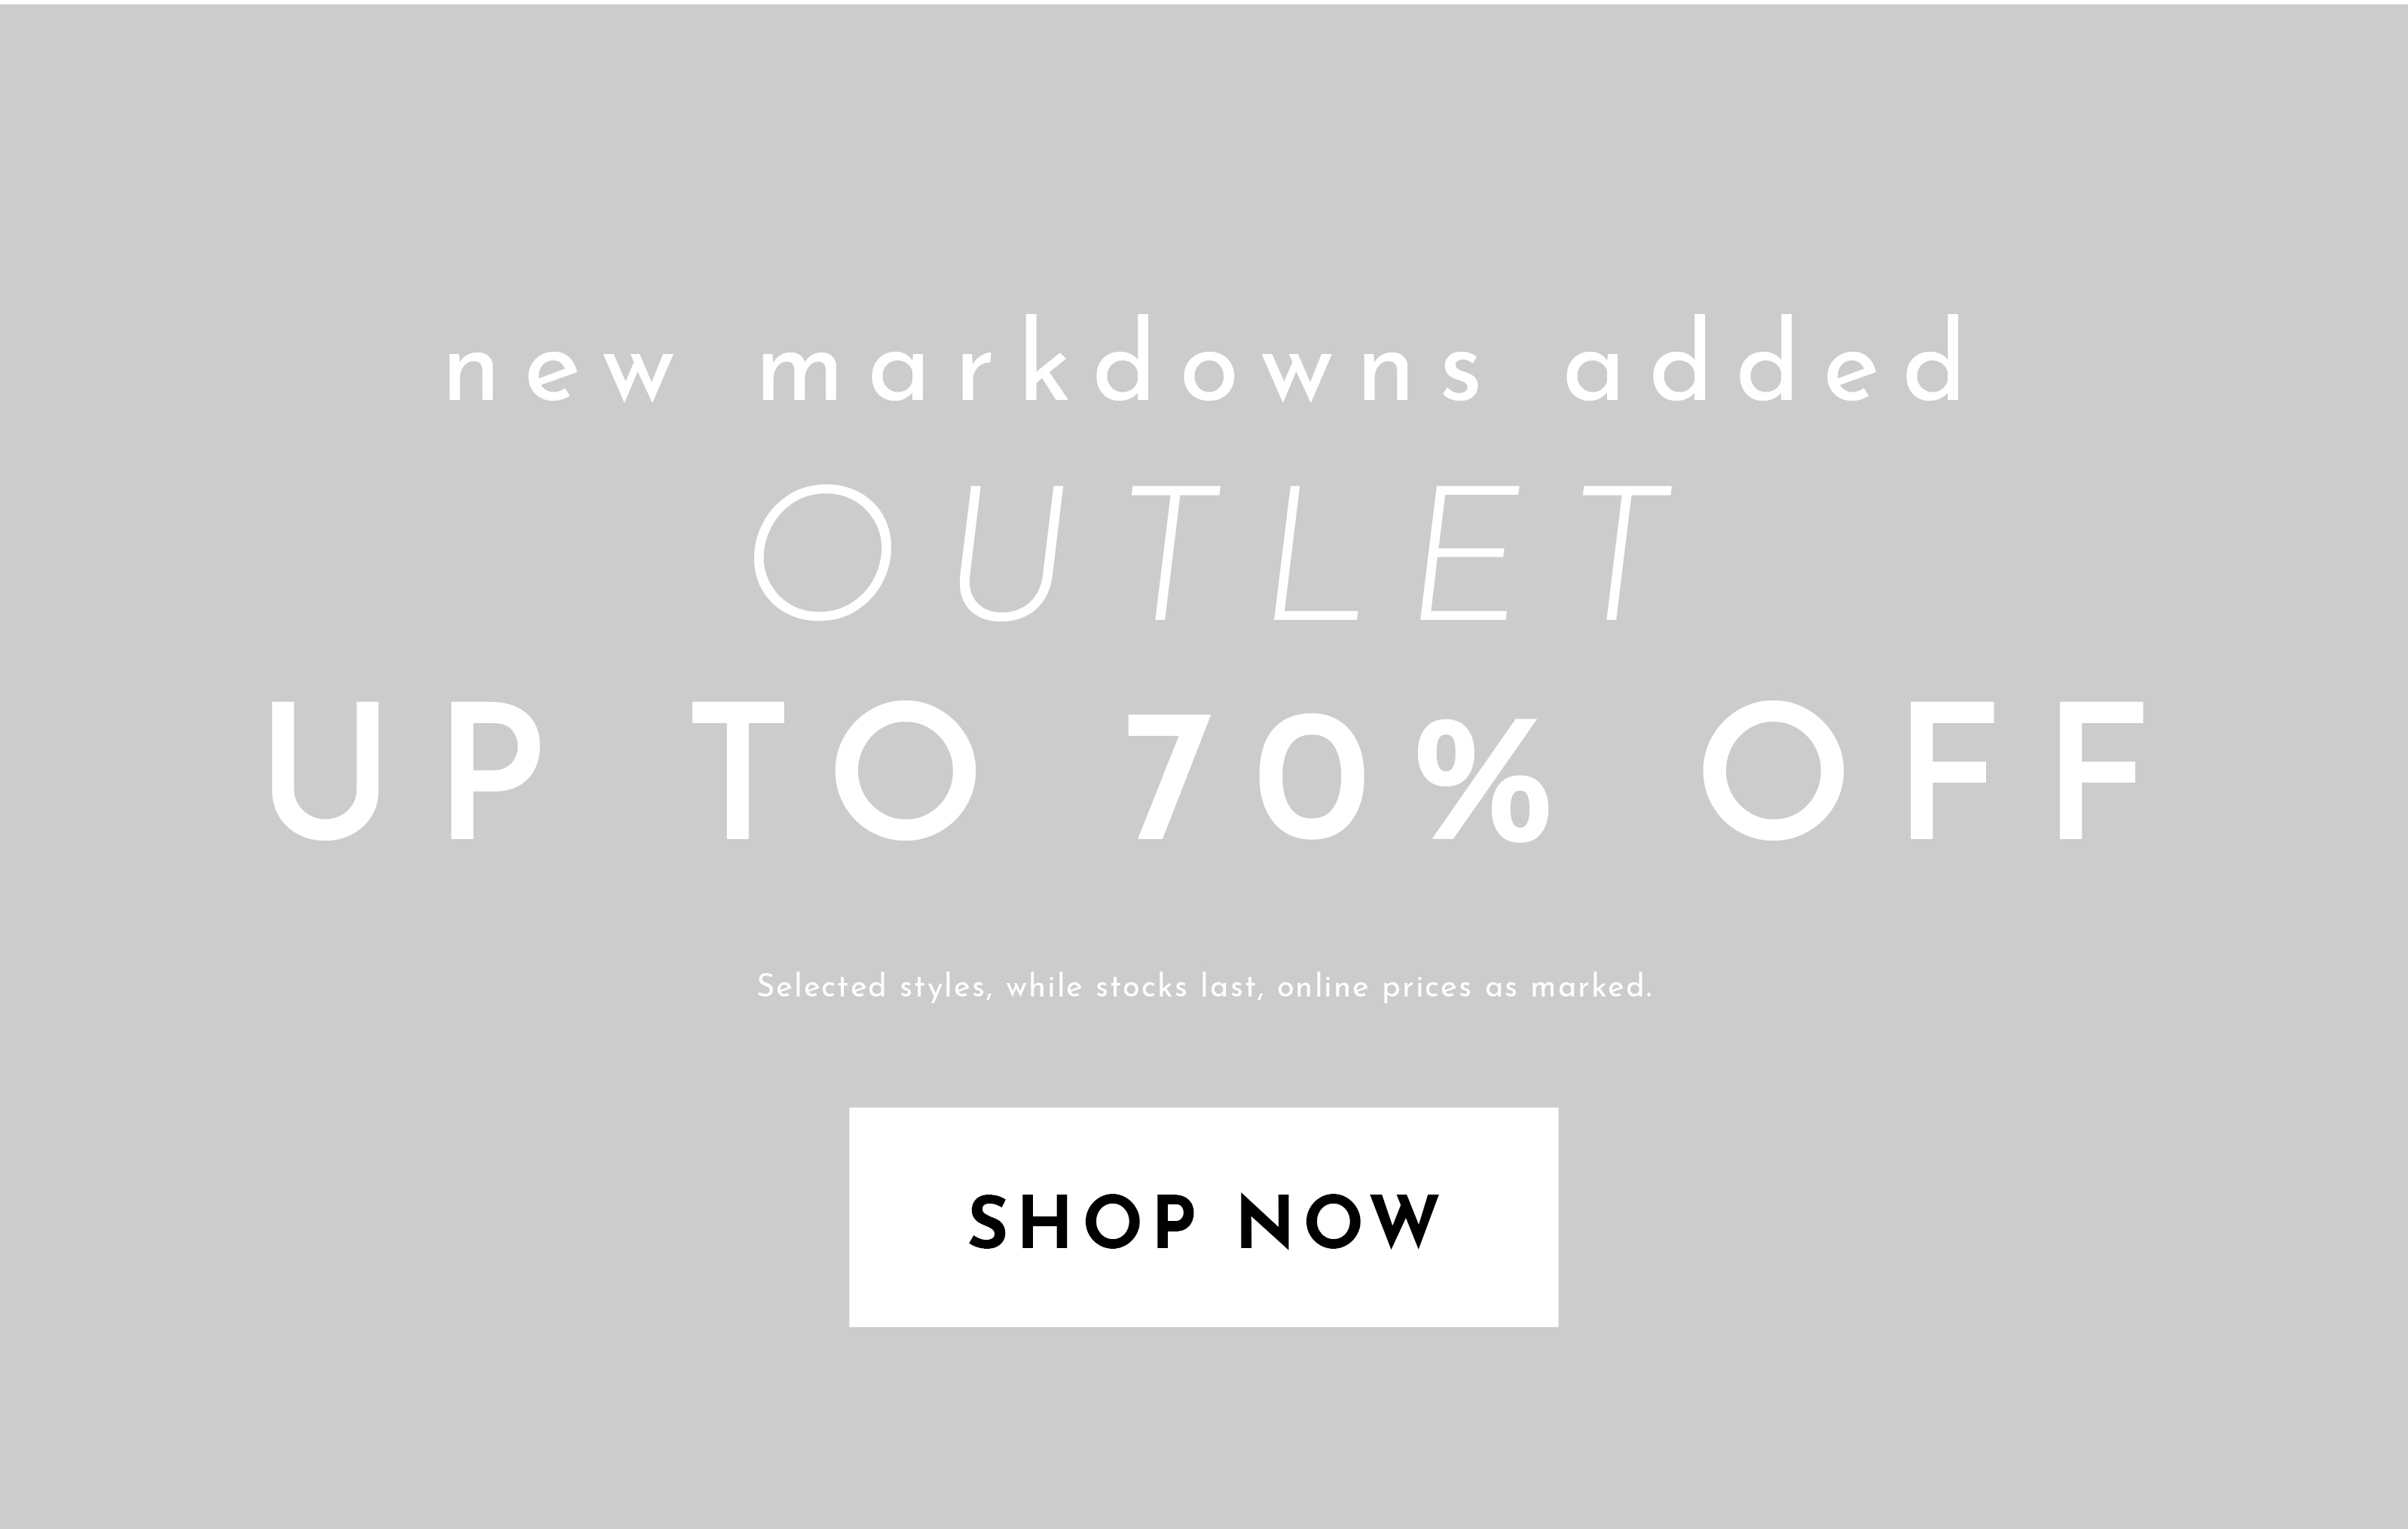 LAST CHANCE - UP TO 70% OFF